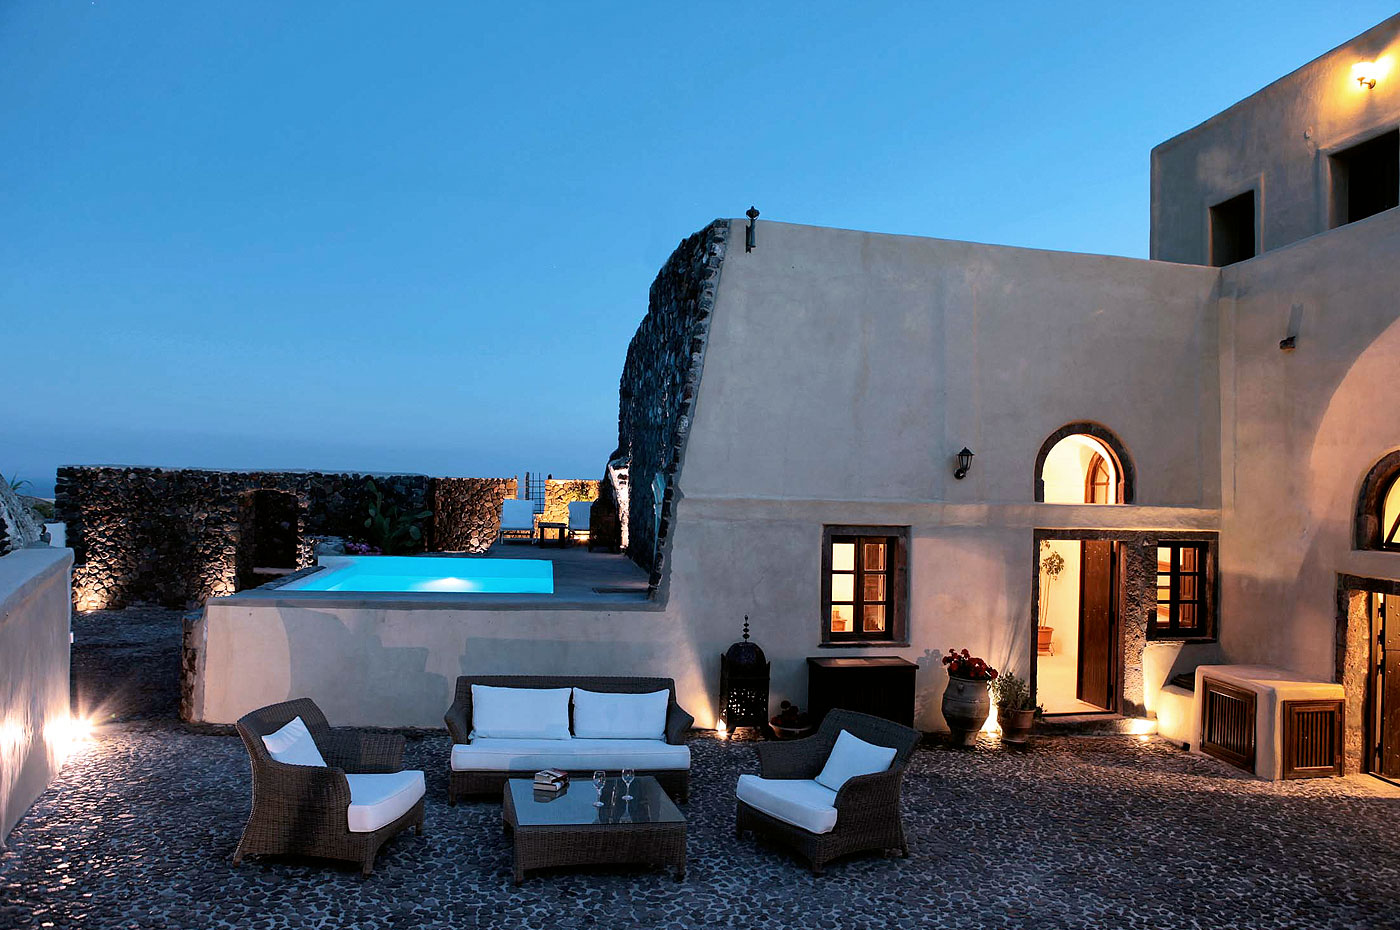 santorini-villas-mansion-kyani-santorini-villas-mansions-santorini-greece-01